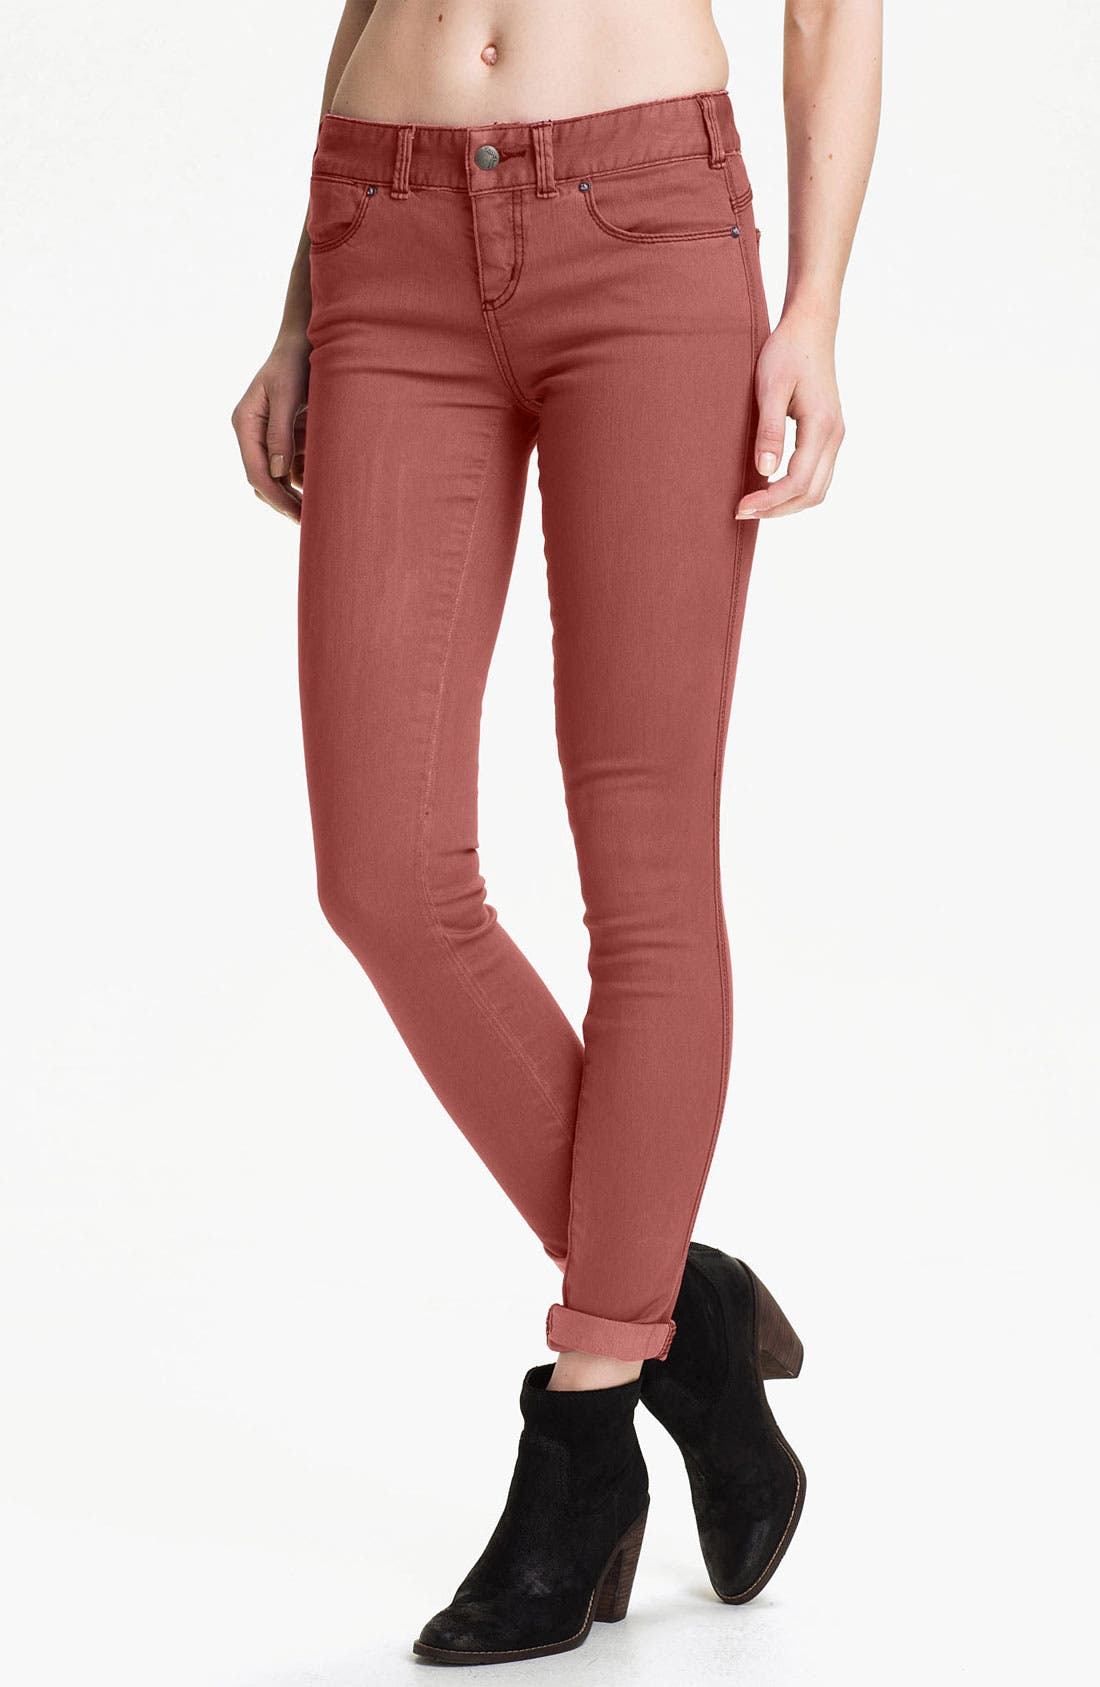 Alternate Image 1 Selected - Free People Colored Stretch Denim Skinny Jeans (Maroon)